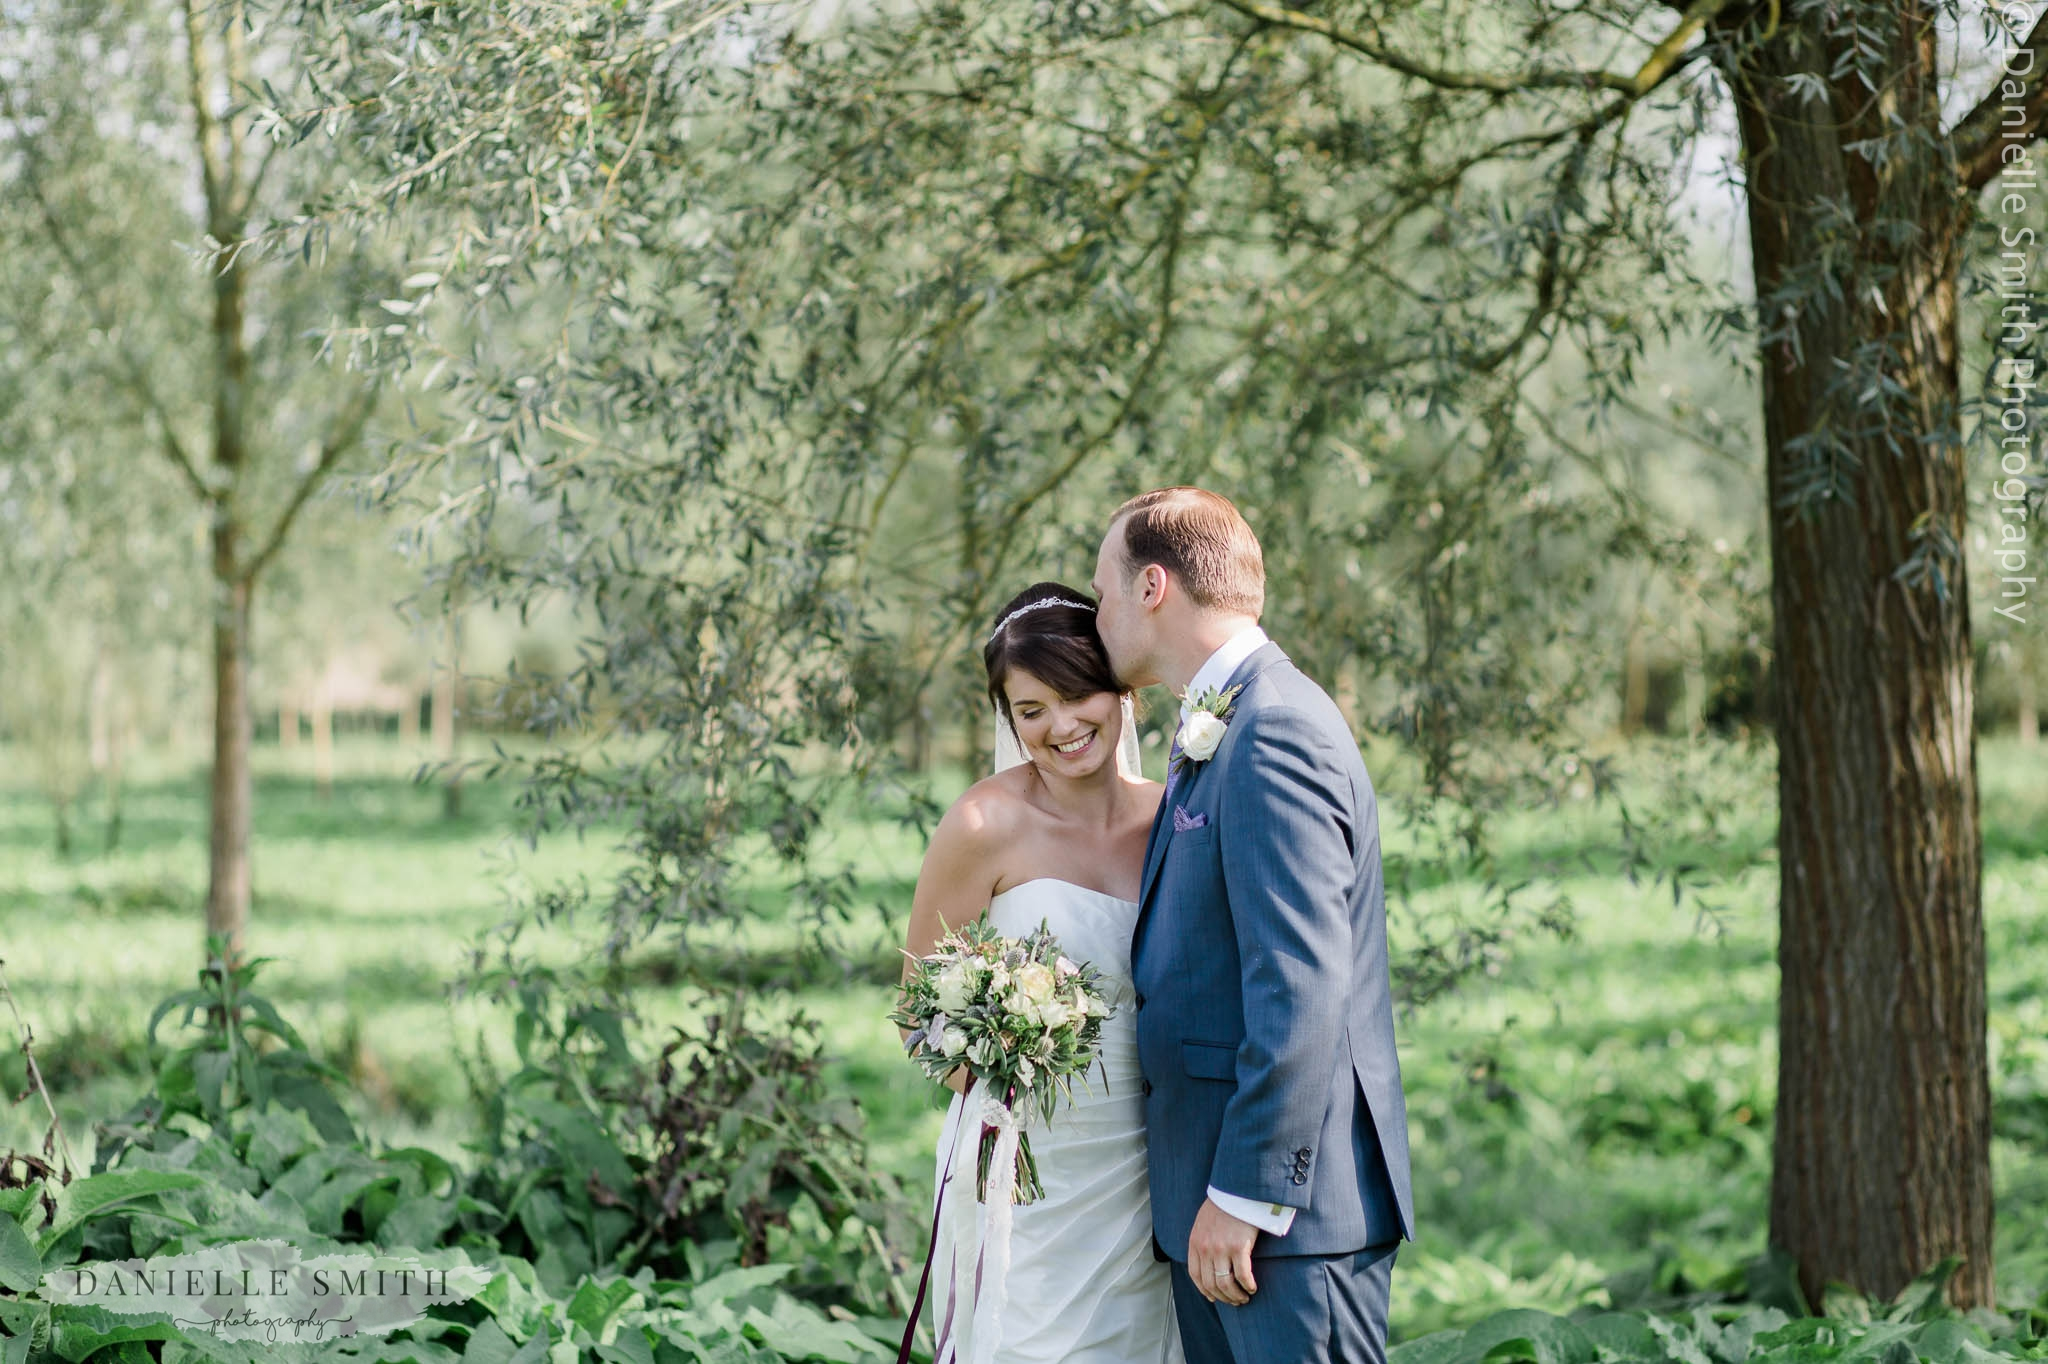 bride and groom at vineyard - wedding photography essex